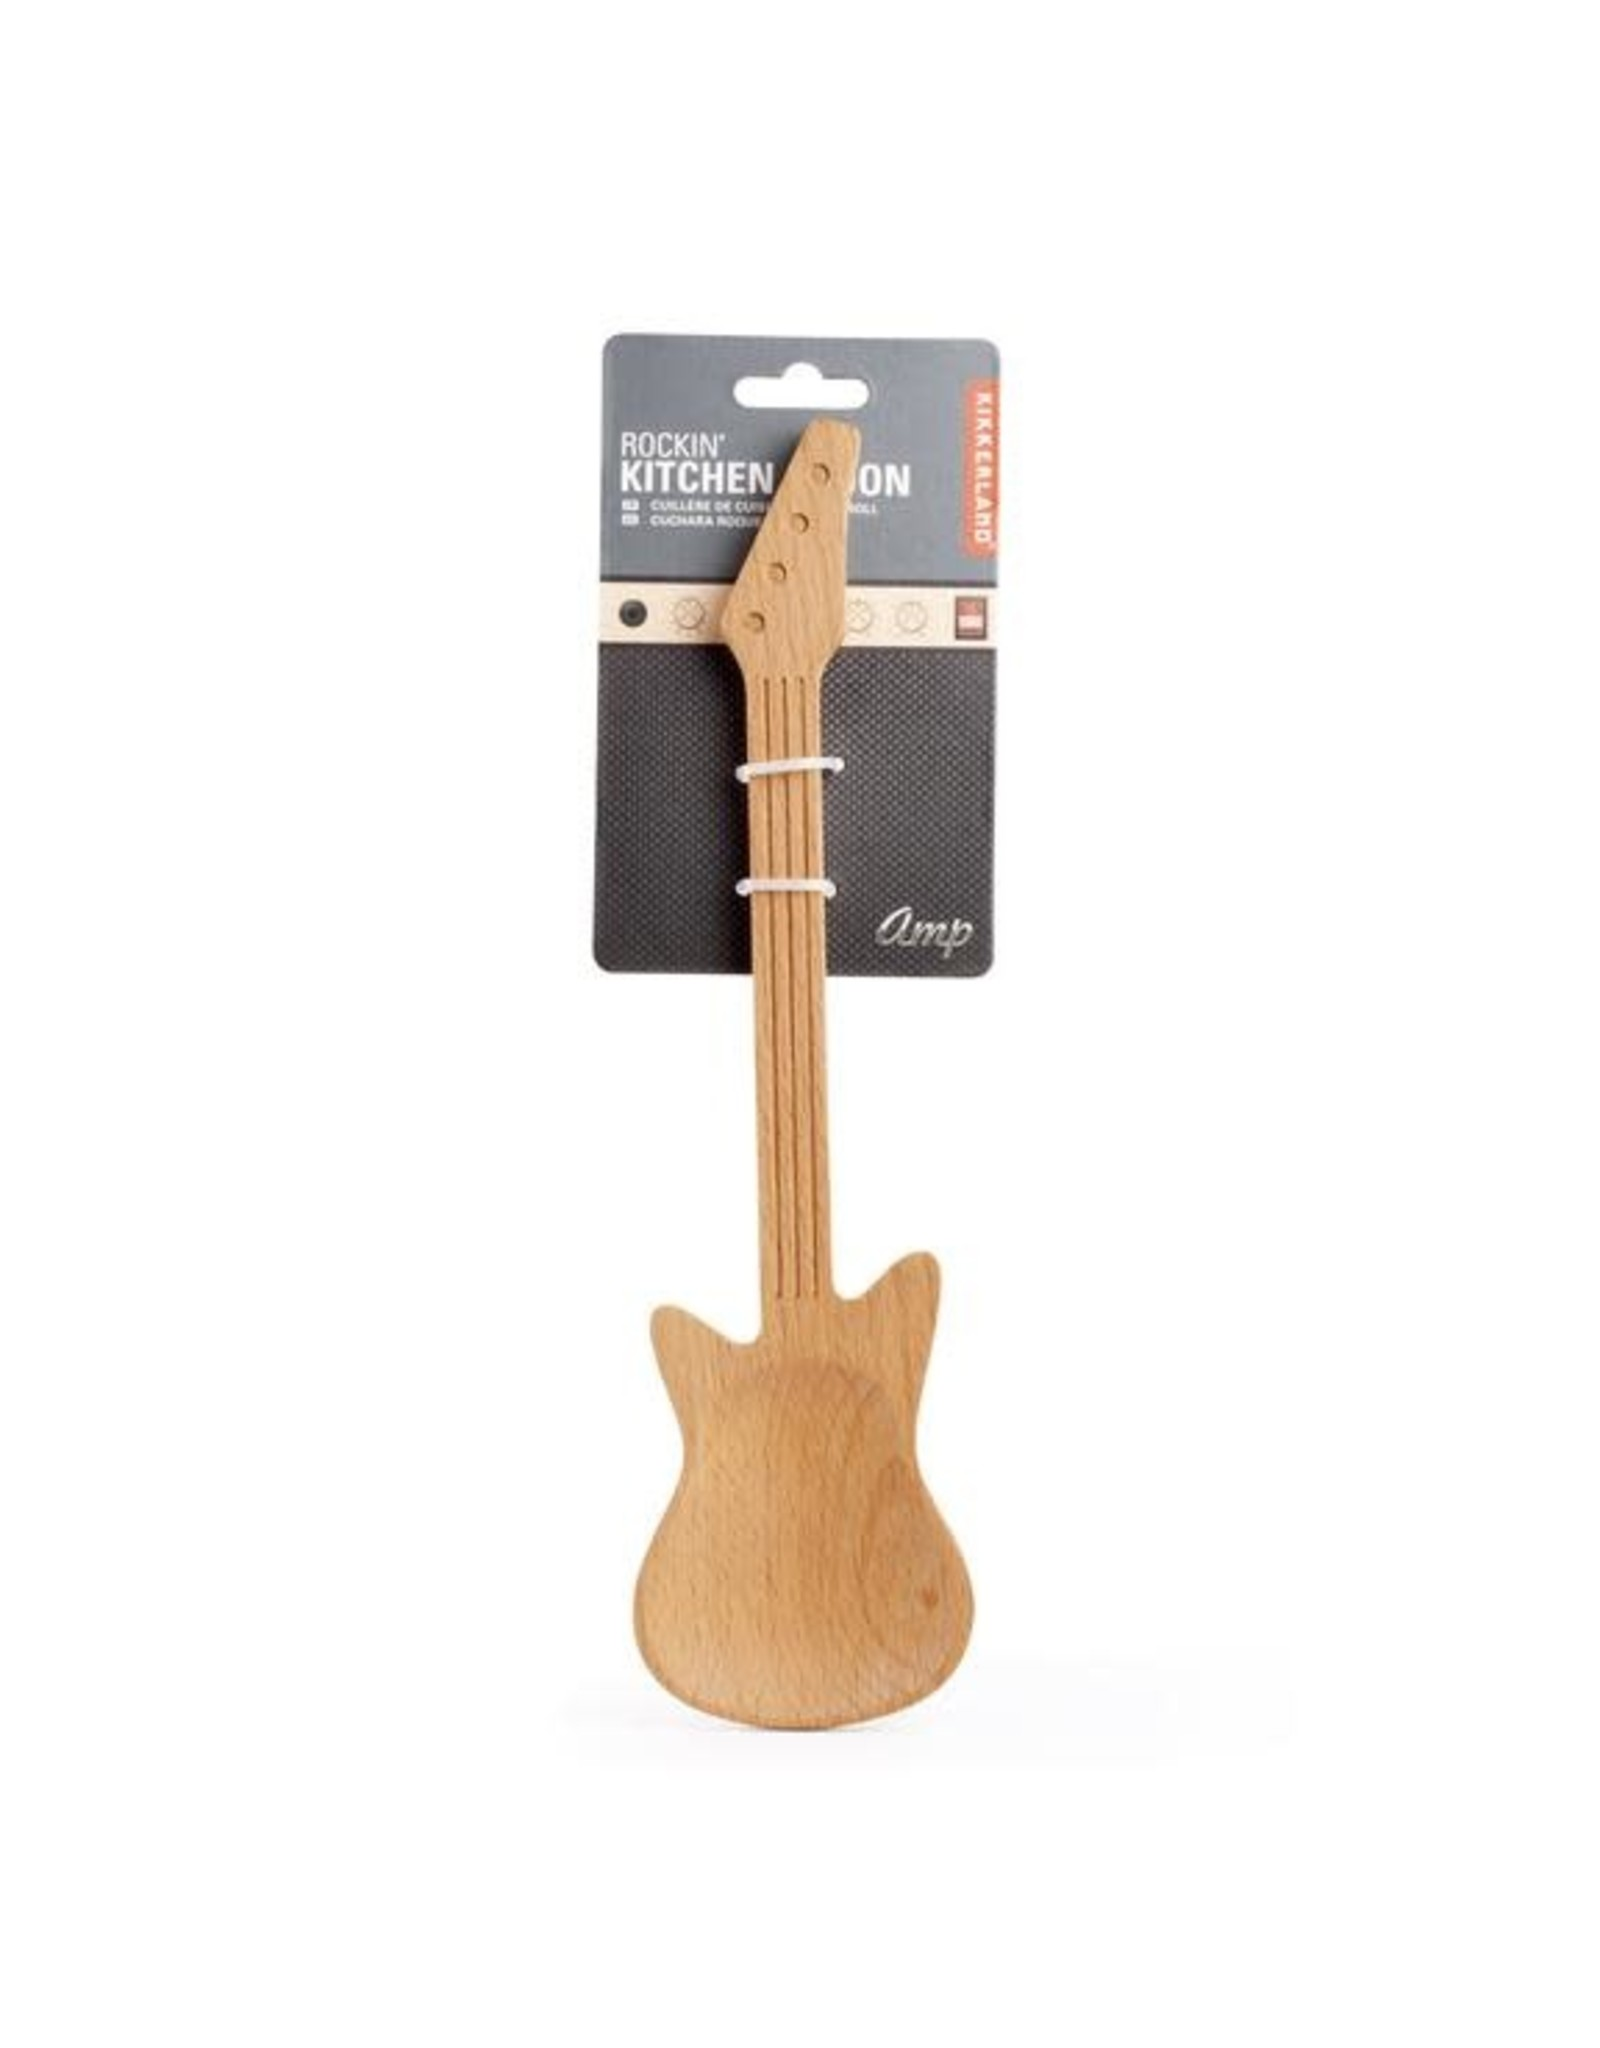 wooden ladle in the shape of a guitar